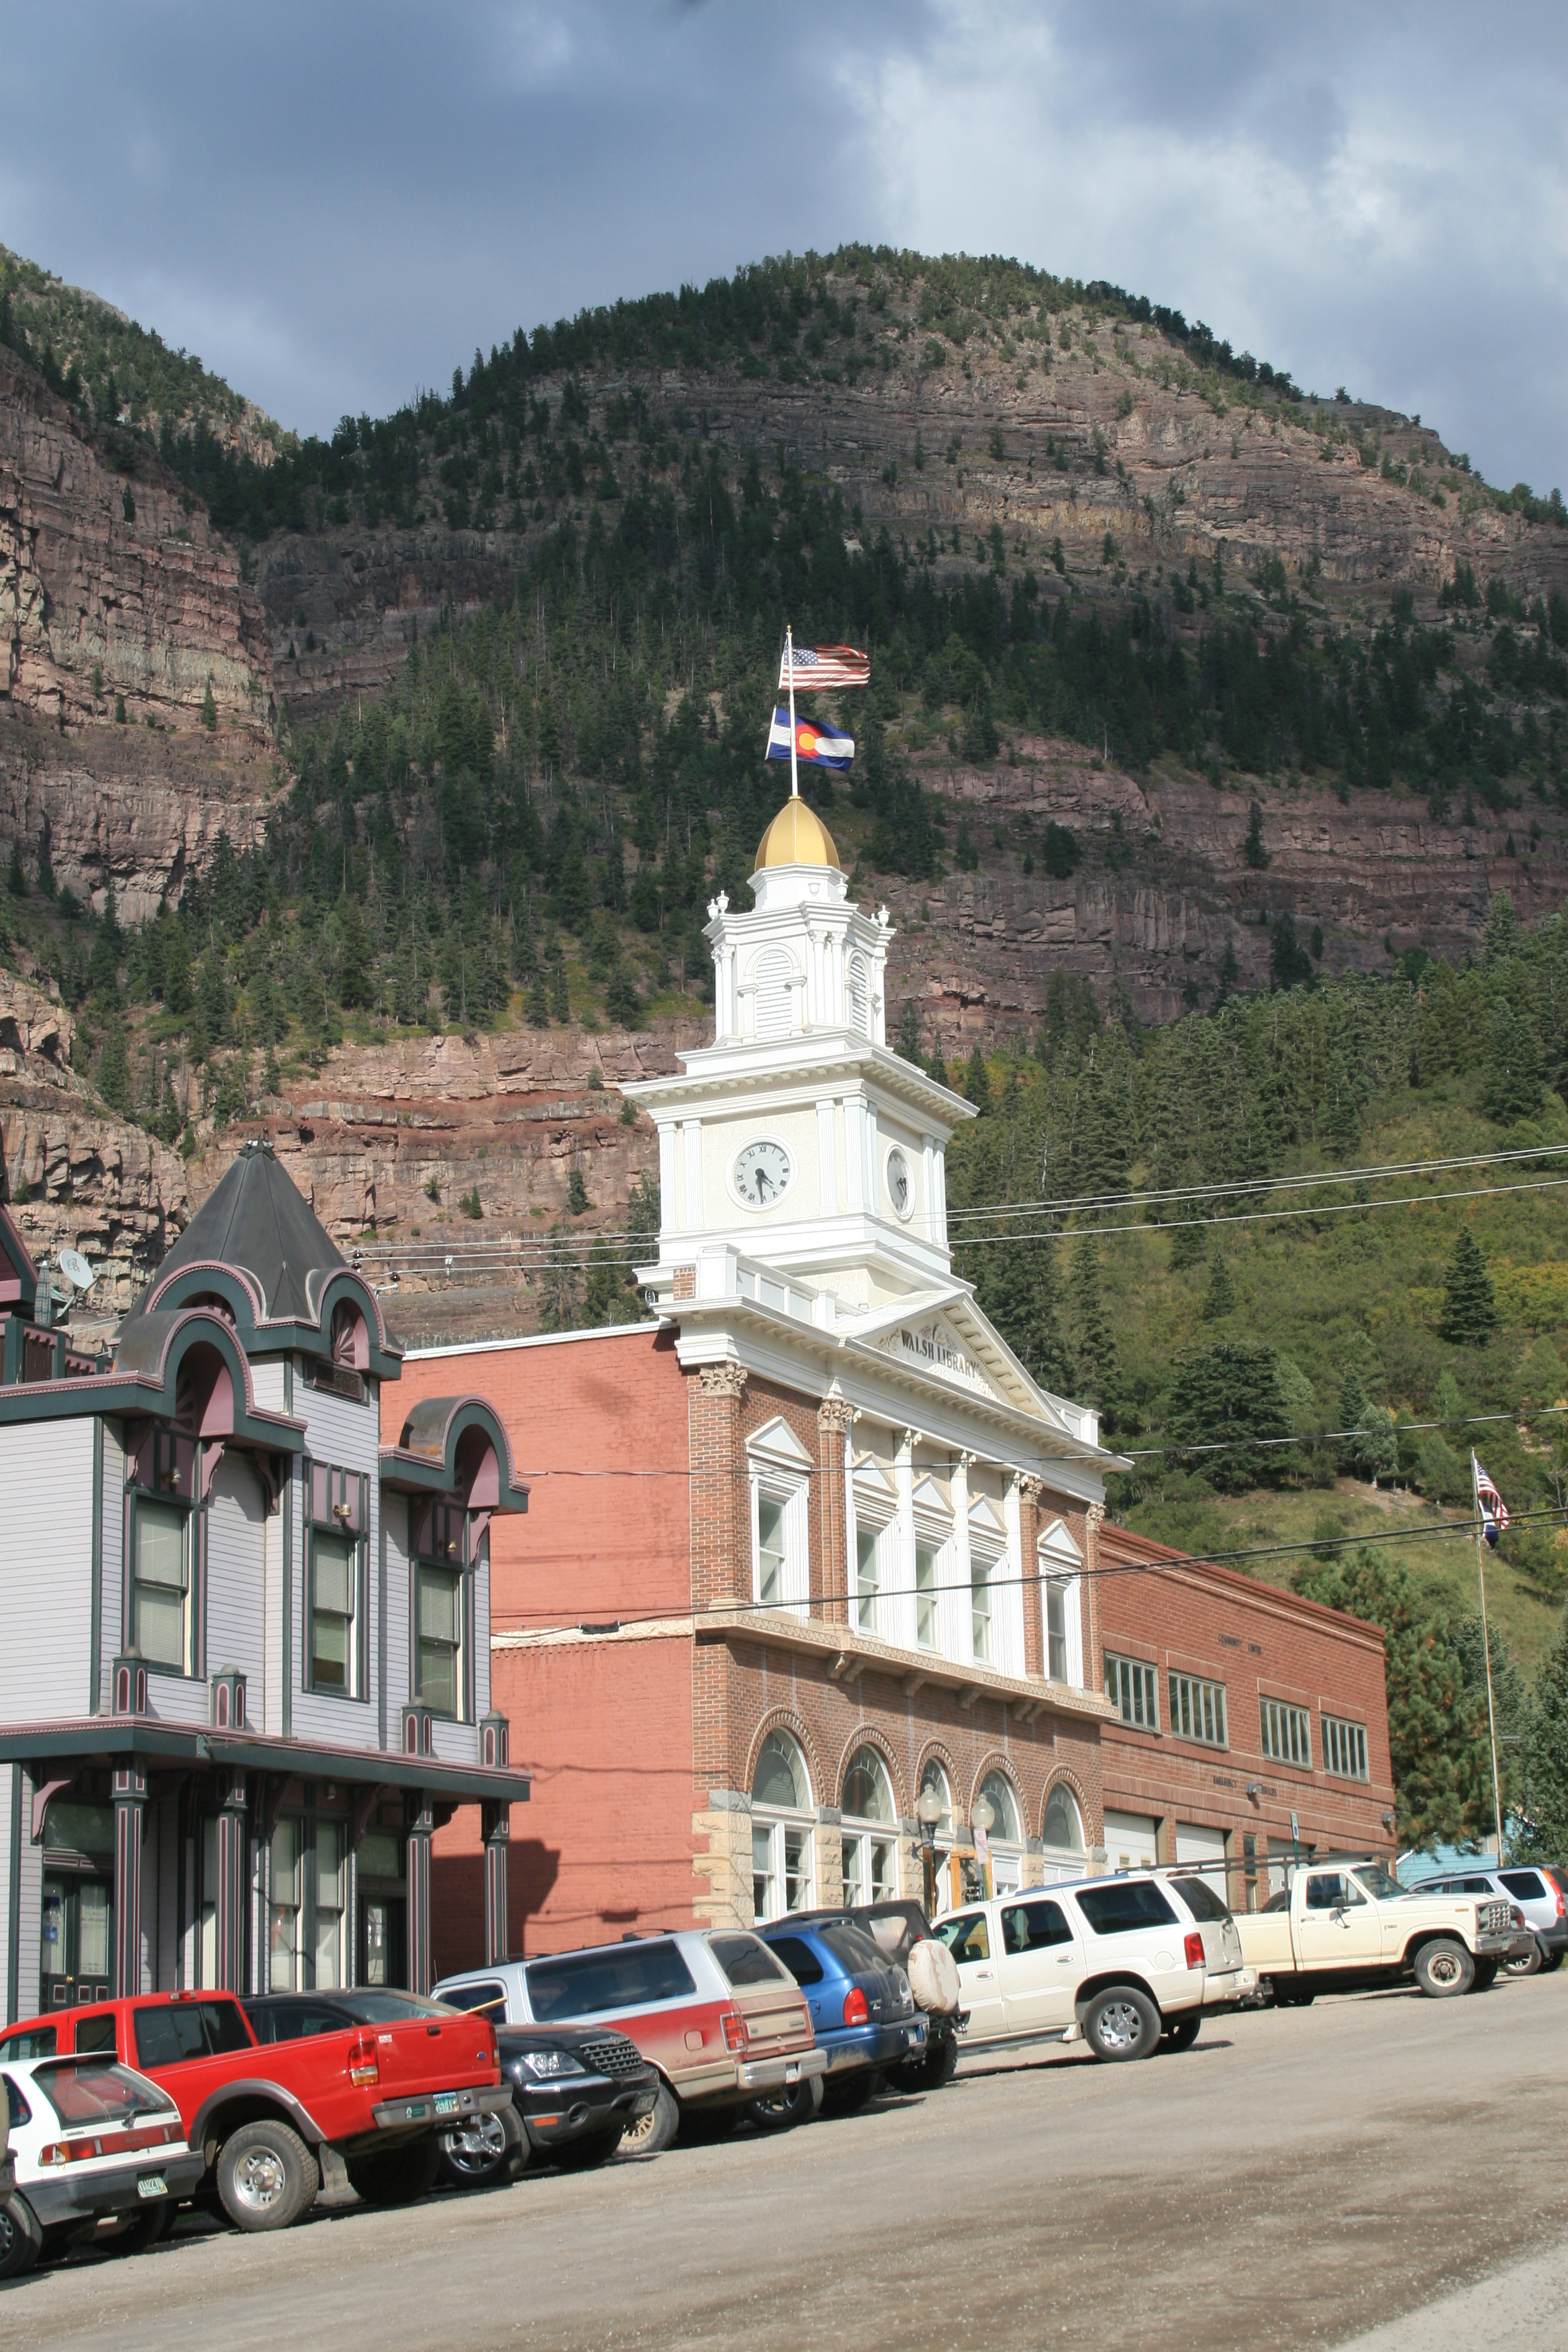 Ouray City Hall, Ouray, Colo